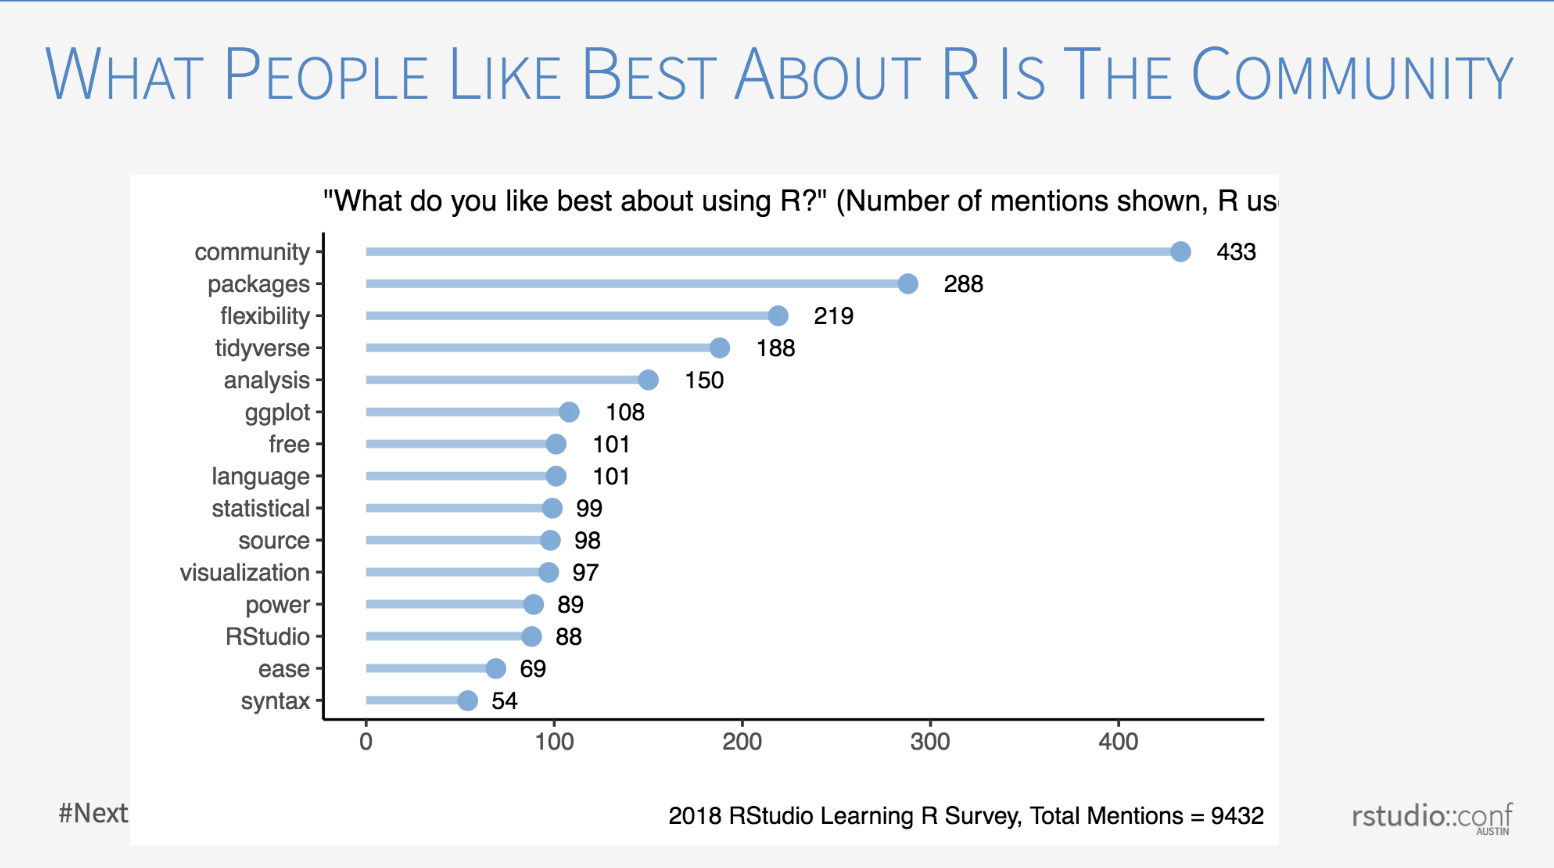 Image credit: Results from the  2018 RStudio Learning R Survey , shared by  Carl Howe  at RStudio Conf 2019